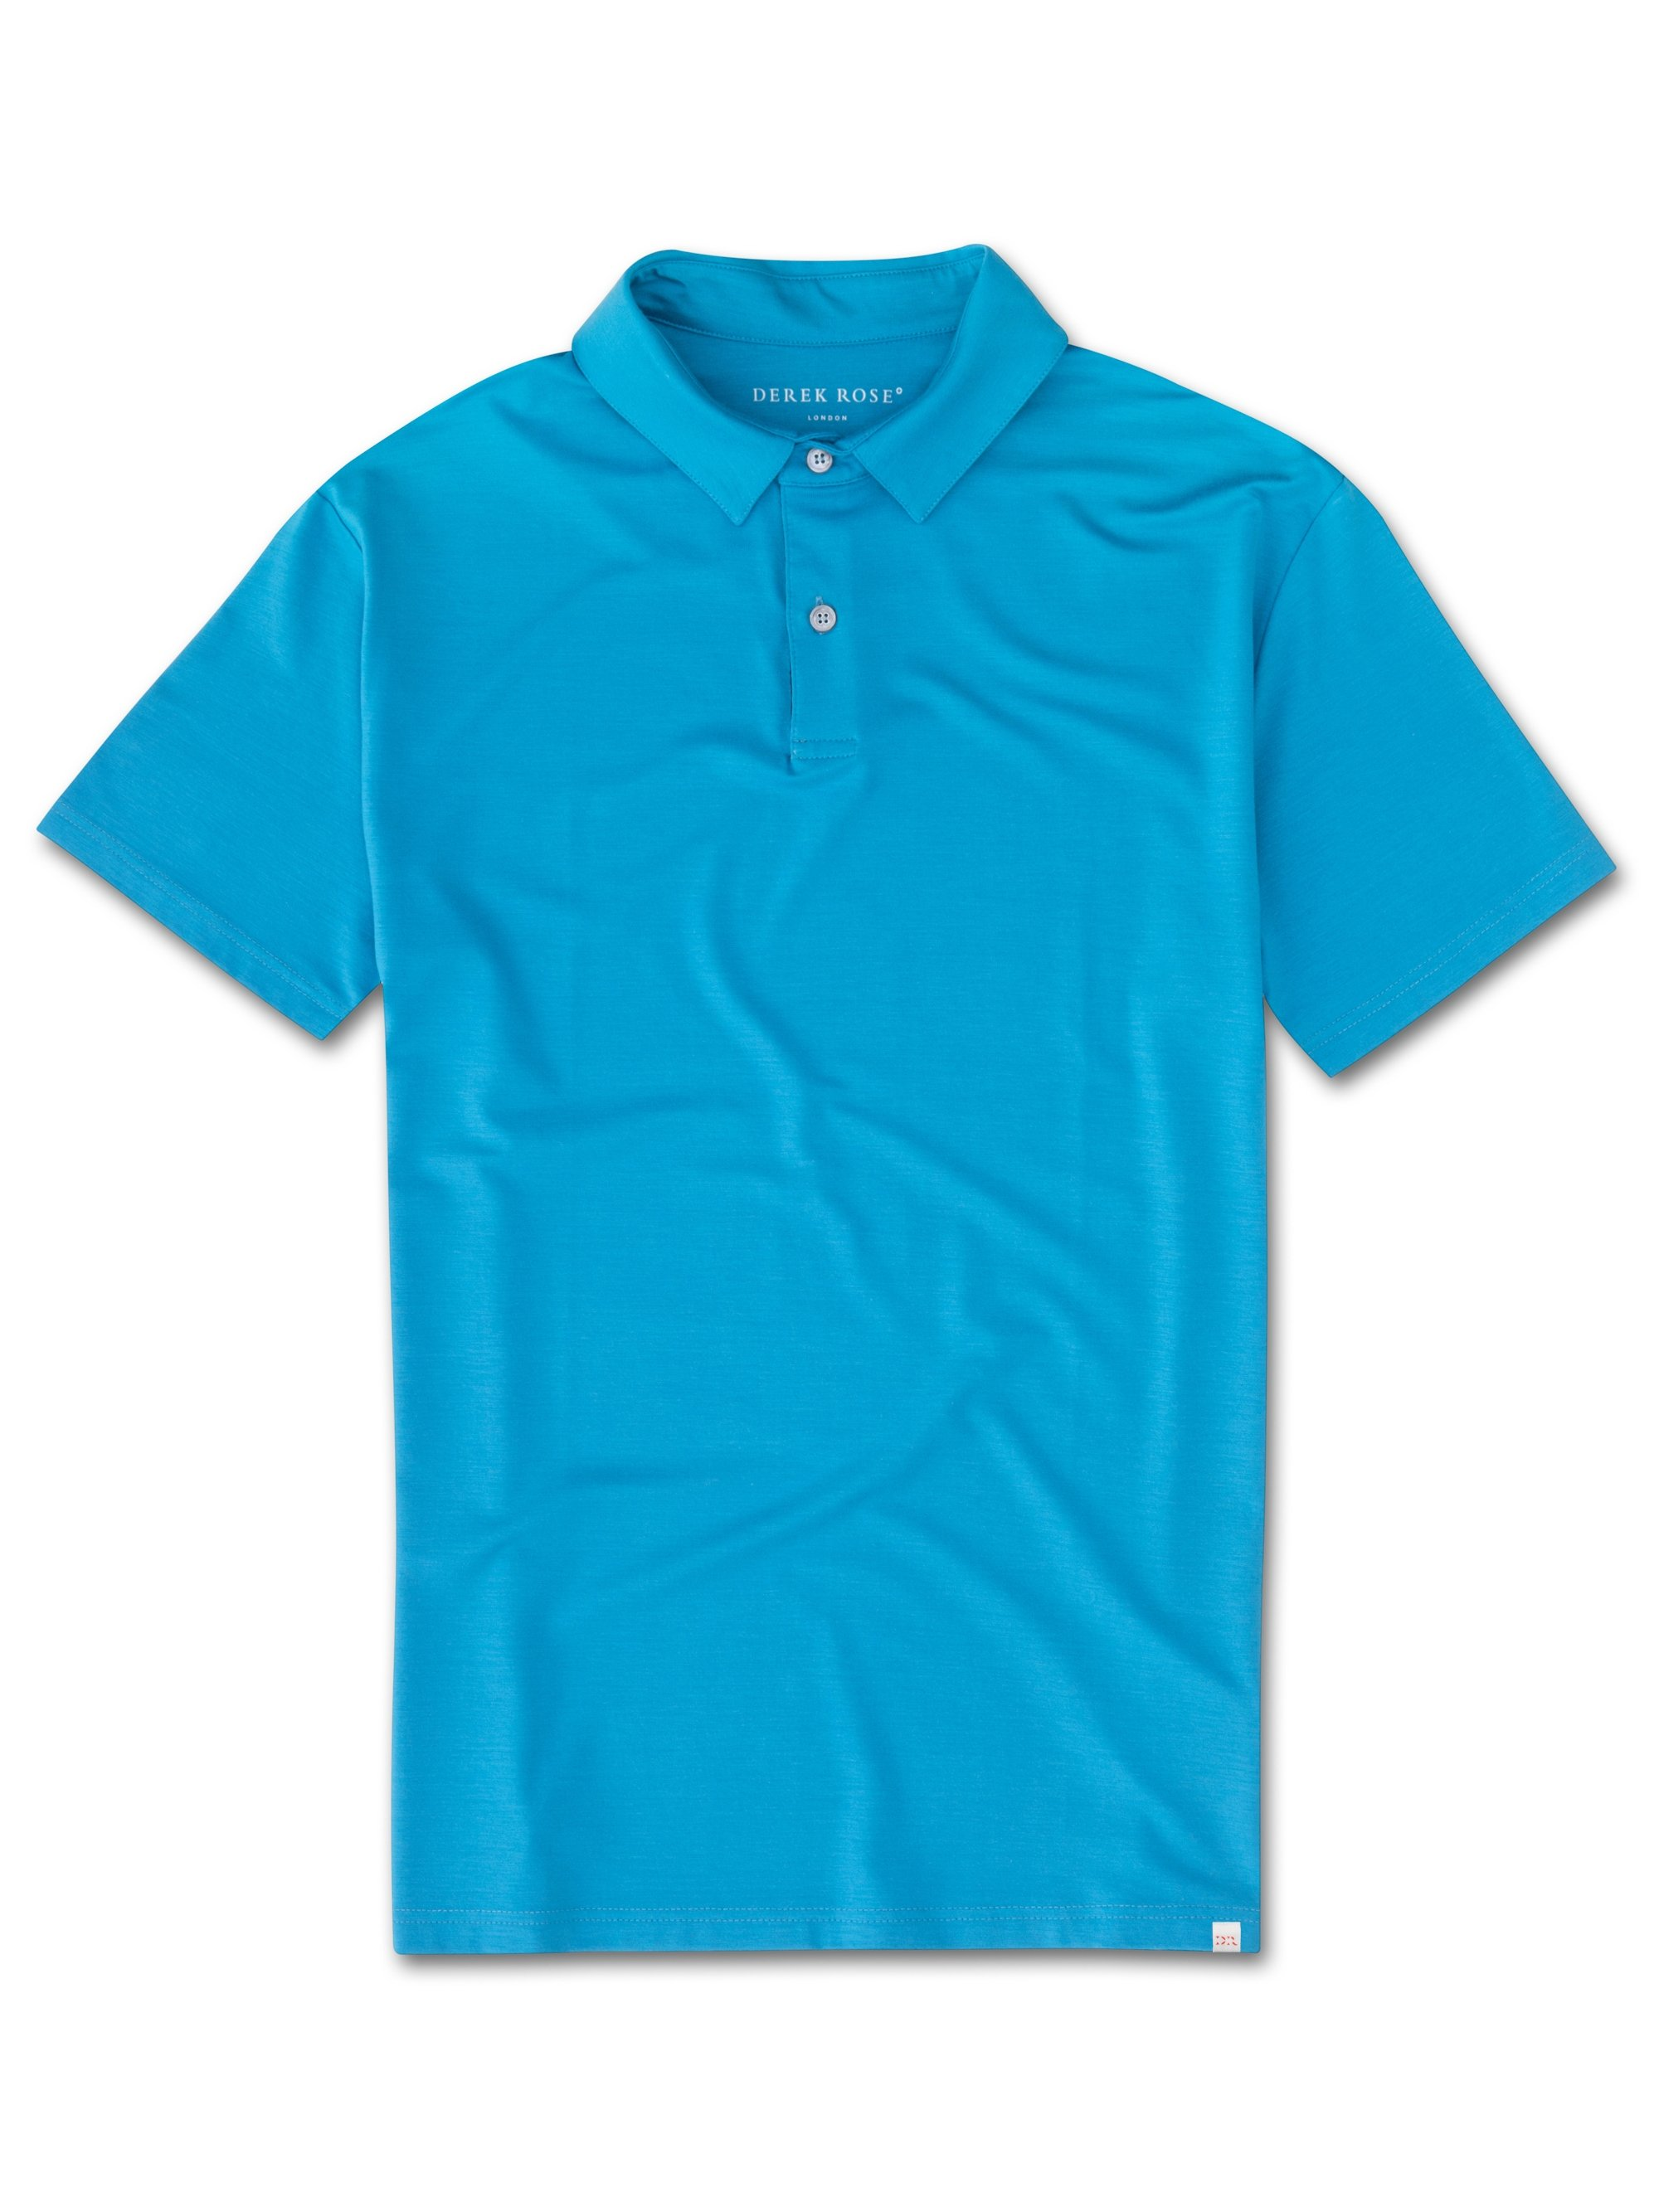 Men's Short Sleeve Polo Shirt Basel 6 Micro Modal Stretch Blue